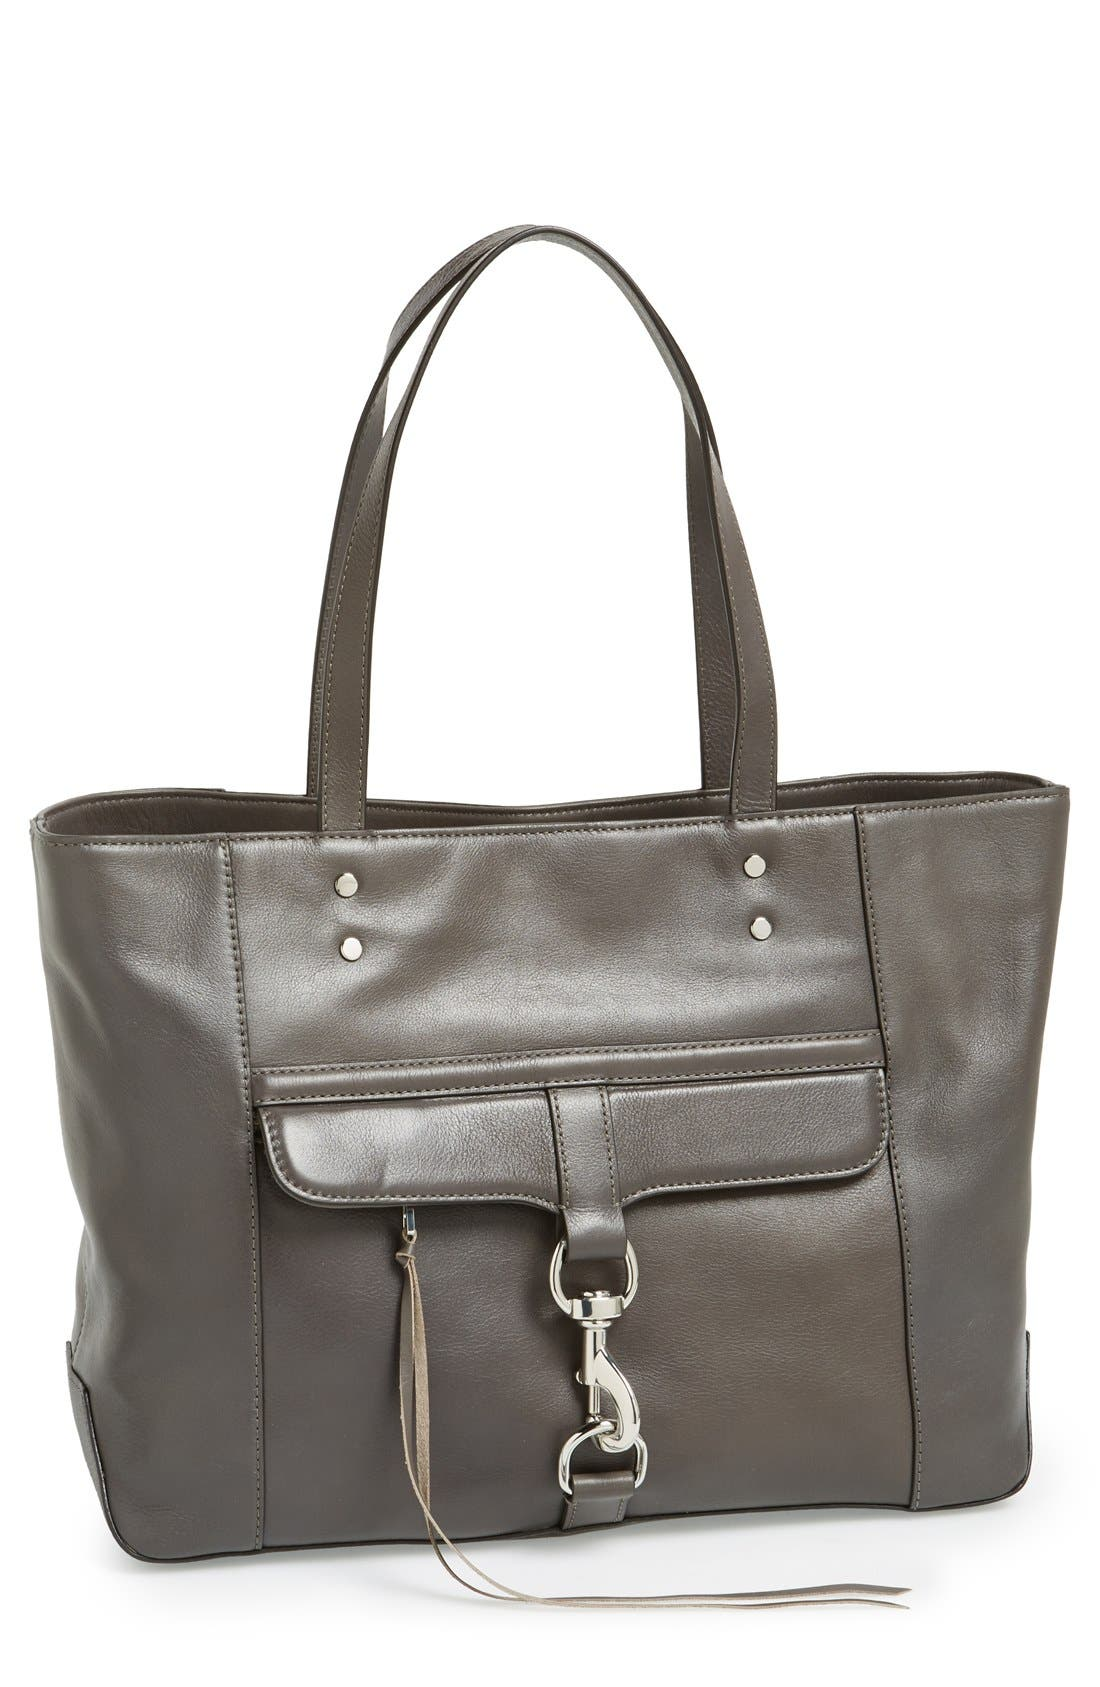 Alternate Image 1 Selected - Rebecca Minkoff 'Bowery' Tote